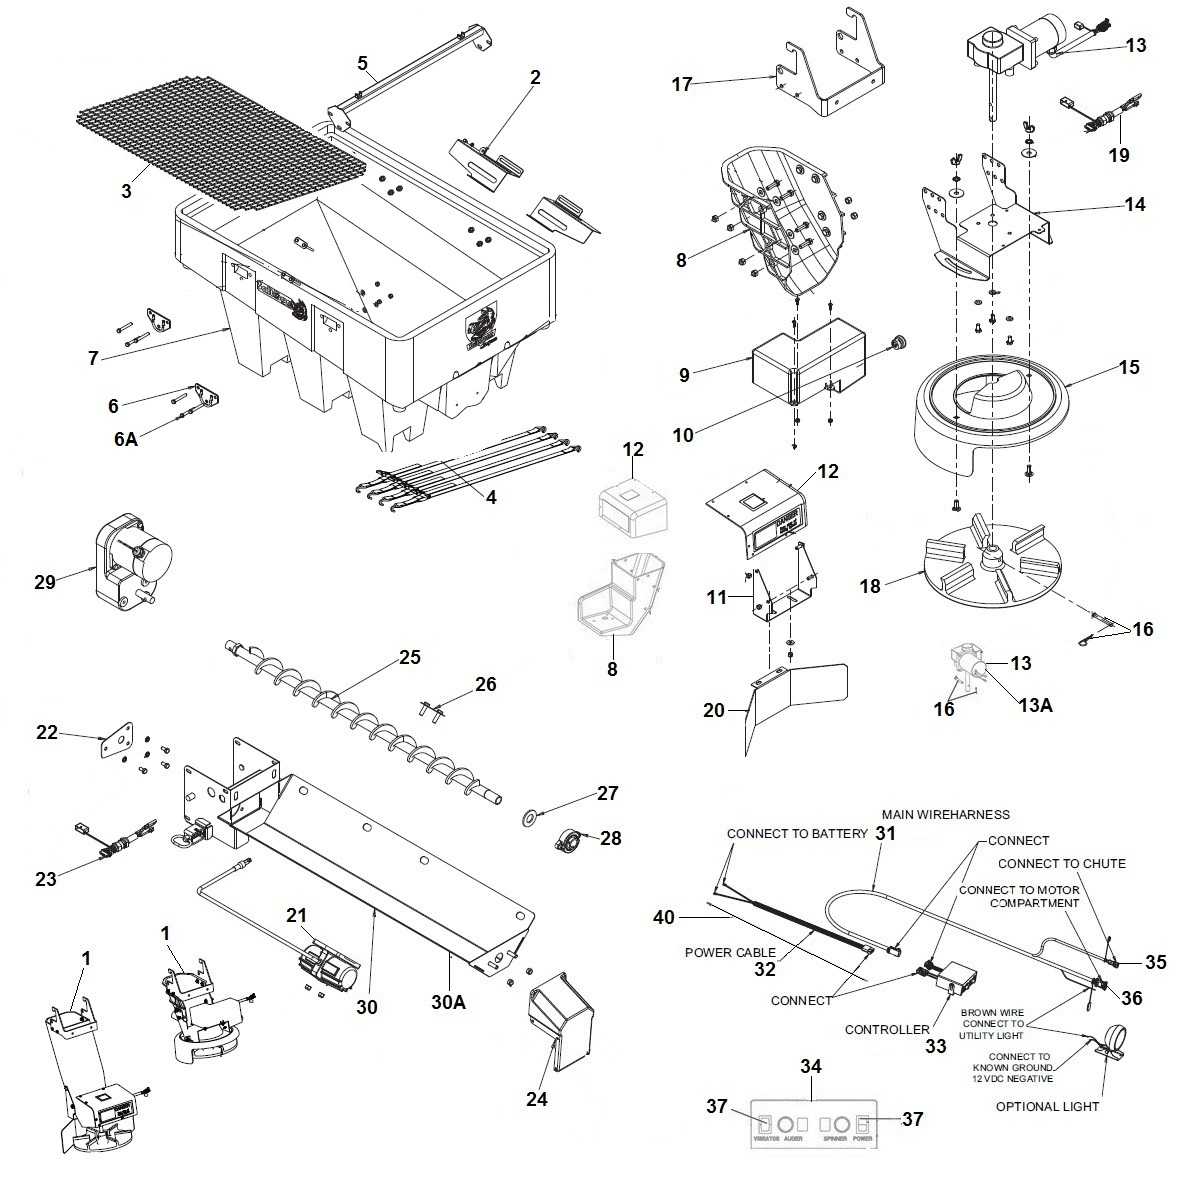 SaltDogg SHPE1000 Spreader Schematic